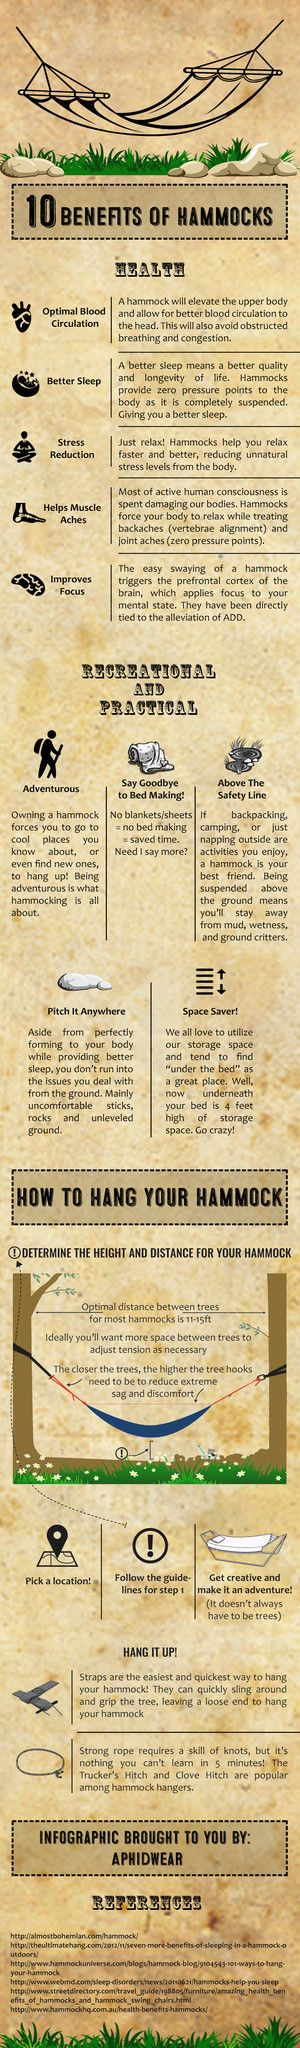 Hammock Benefit Infographic – from @AphidWear